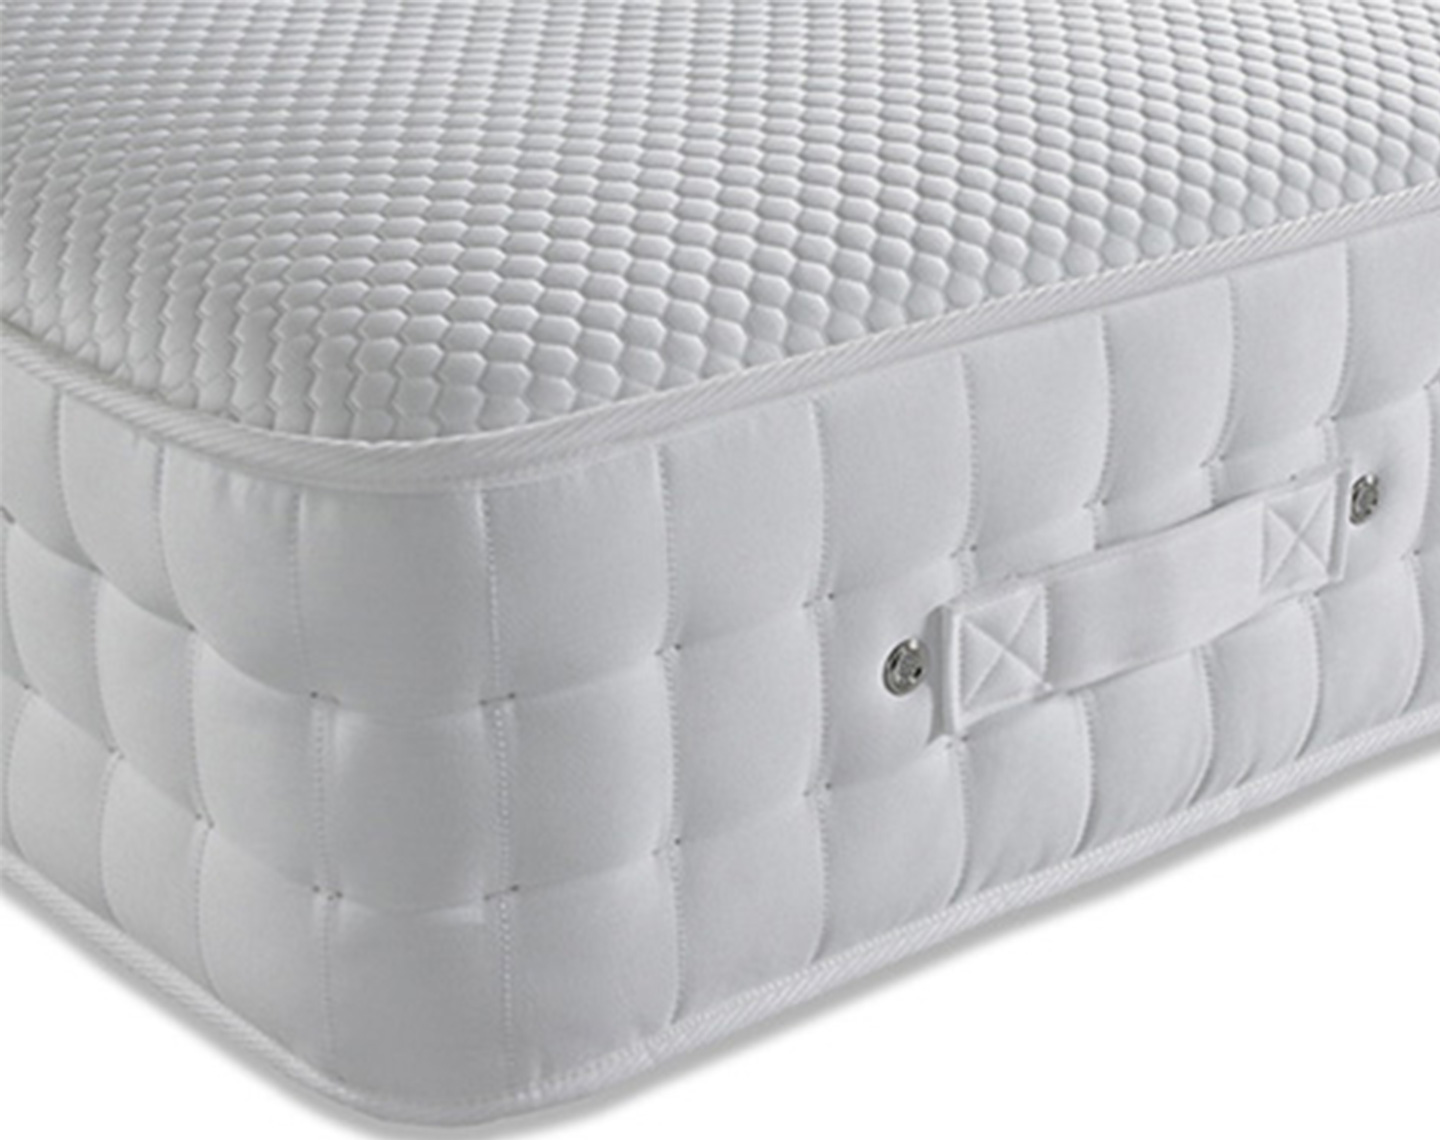 Memory 3000 Pocket Spring Hypoallergenic Mattress angle